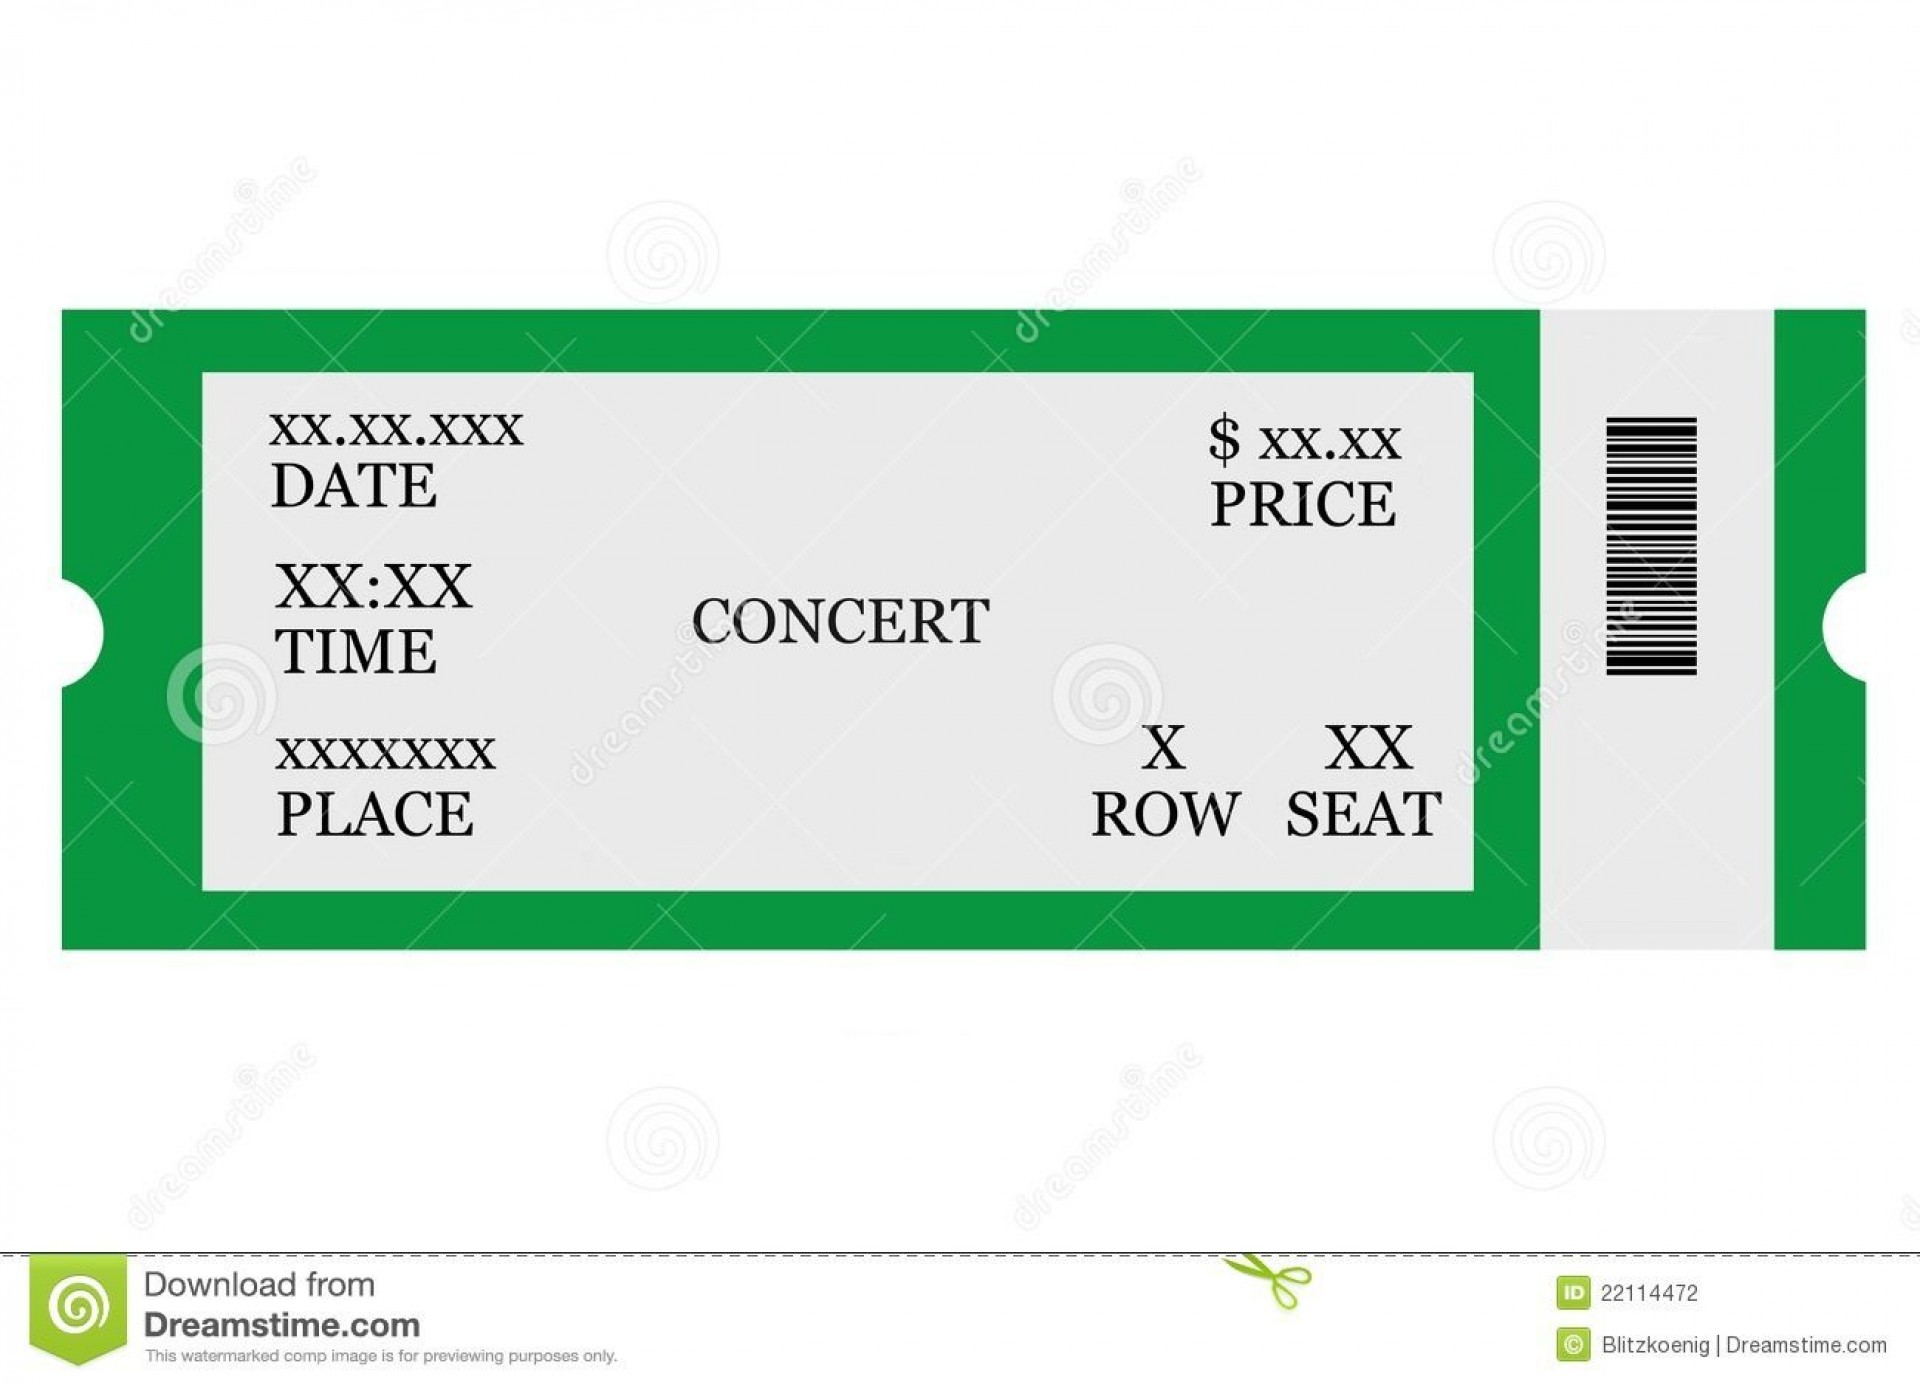 008 Incredible Free Concert Ticket Maker Template Sample  Printable Gift1920